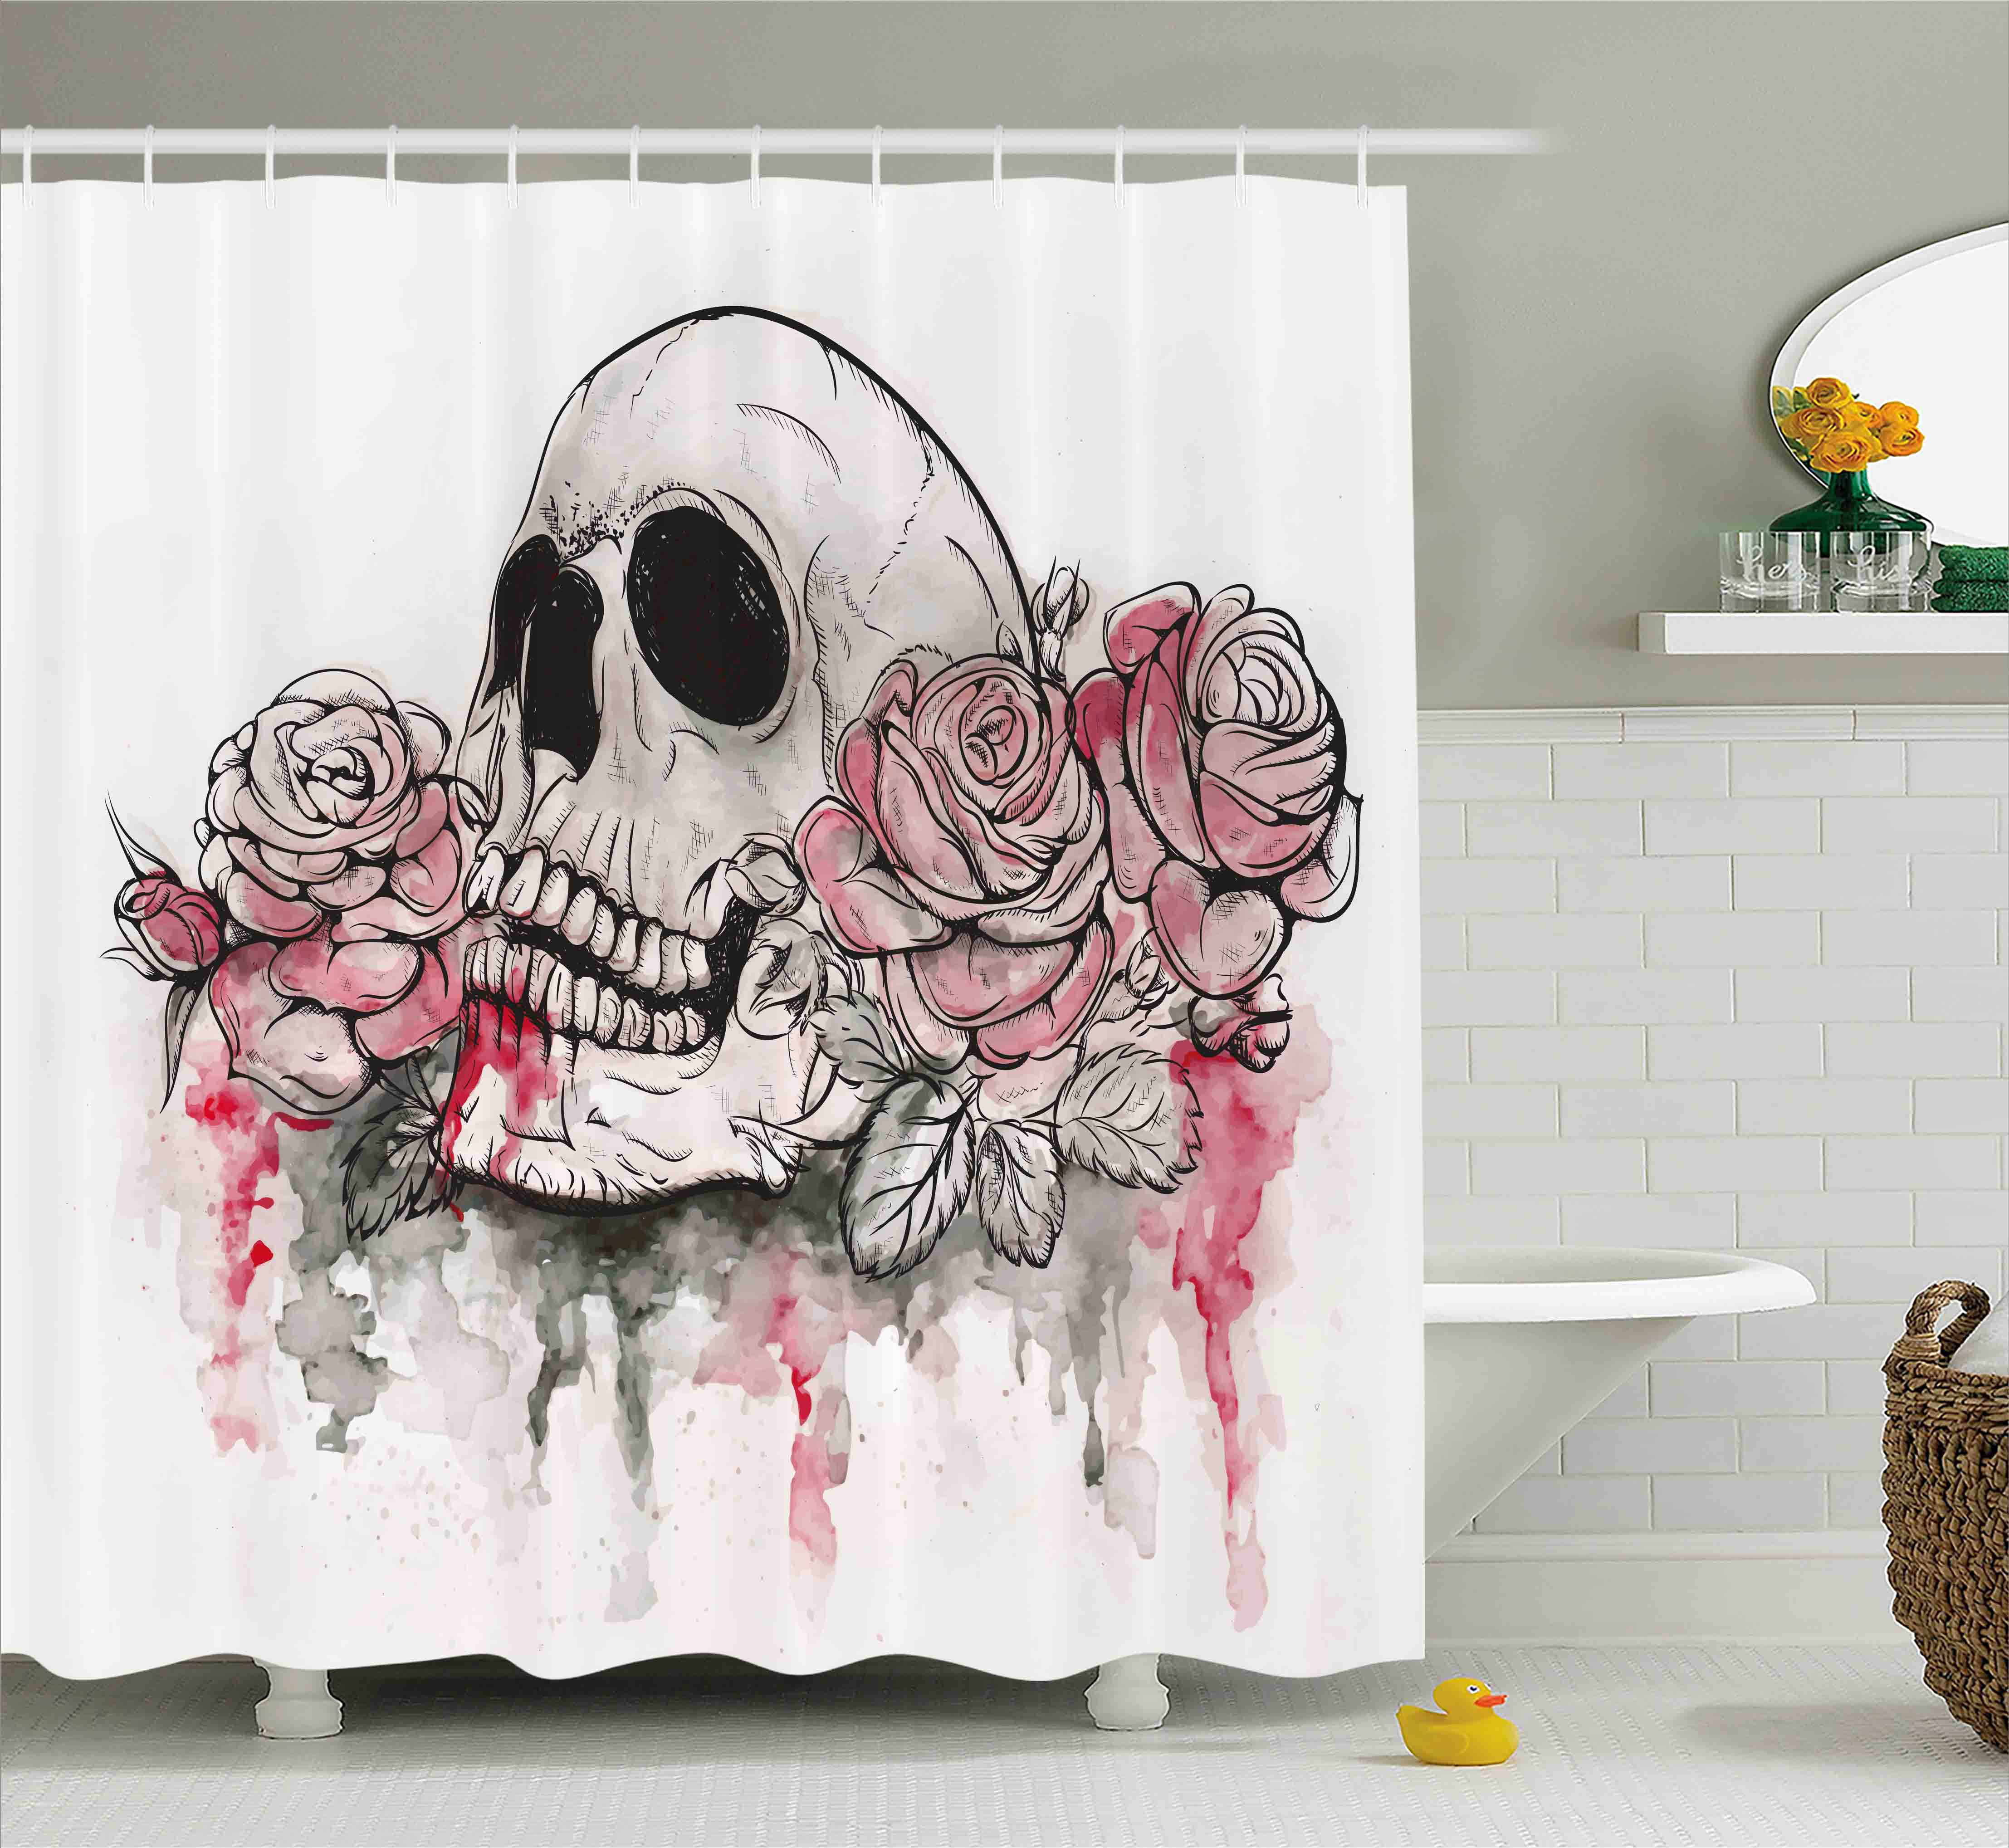 Day Of The Dead Decor Shower Curtain, Print of Skull Dead with Romantic Roses Celebration Day, Fabric Bathroom Set with Hooks, 69W X 84L Inches Extra Long, White Light Pink Black, by Ambesonne